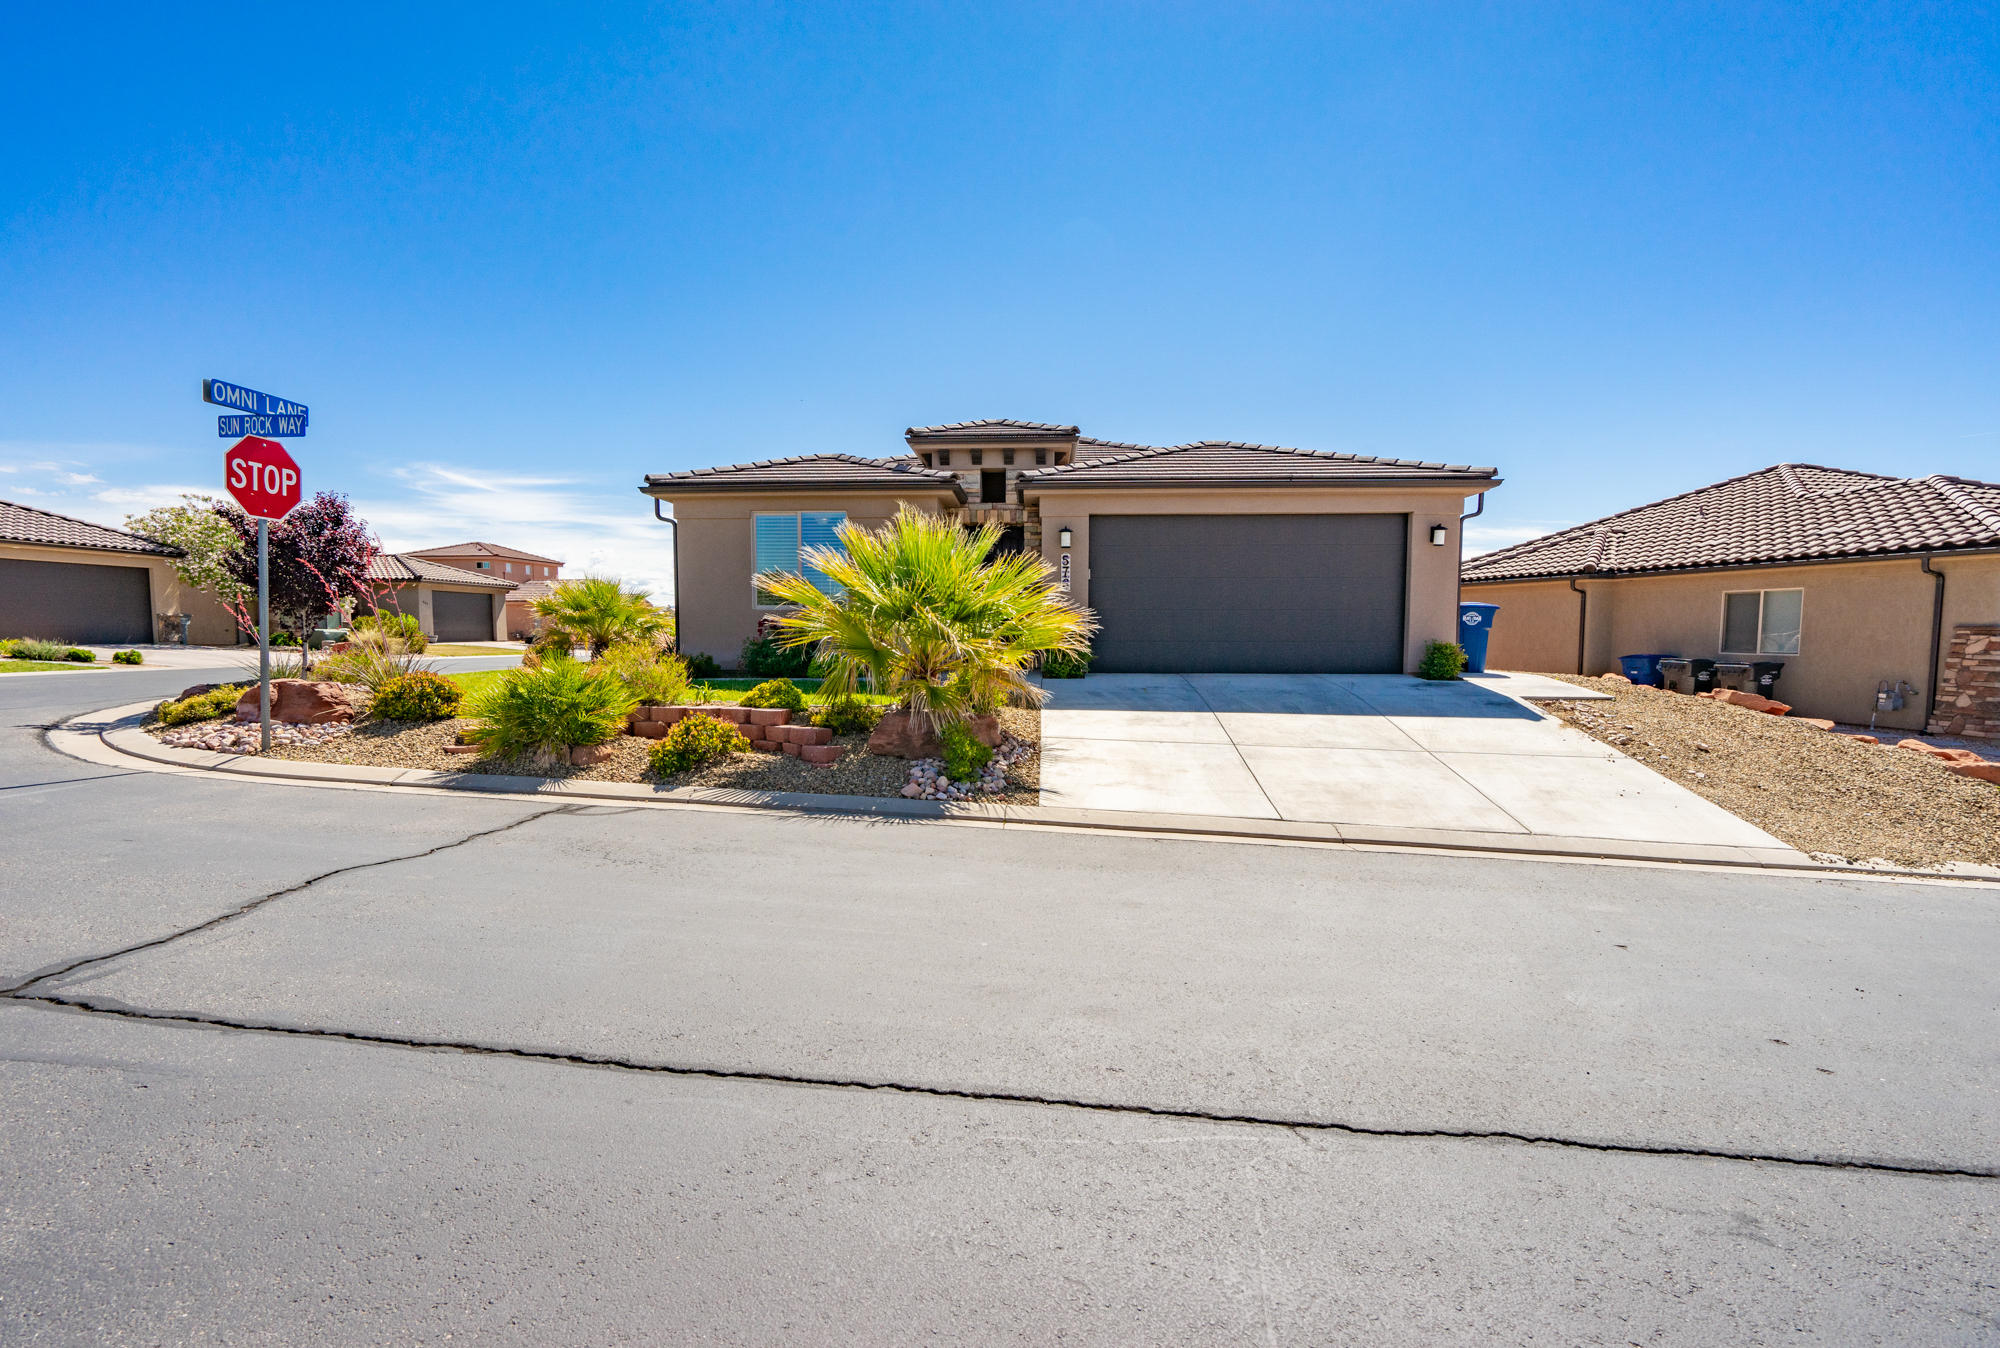 576 N Sunrock Way, Washington Ut 84780